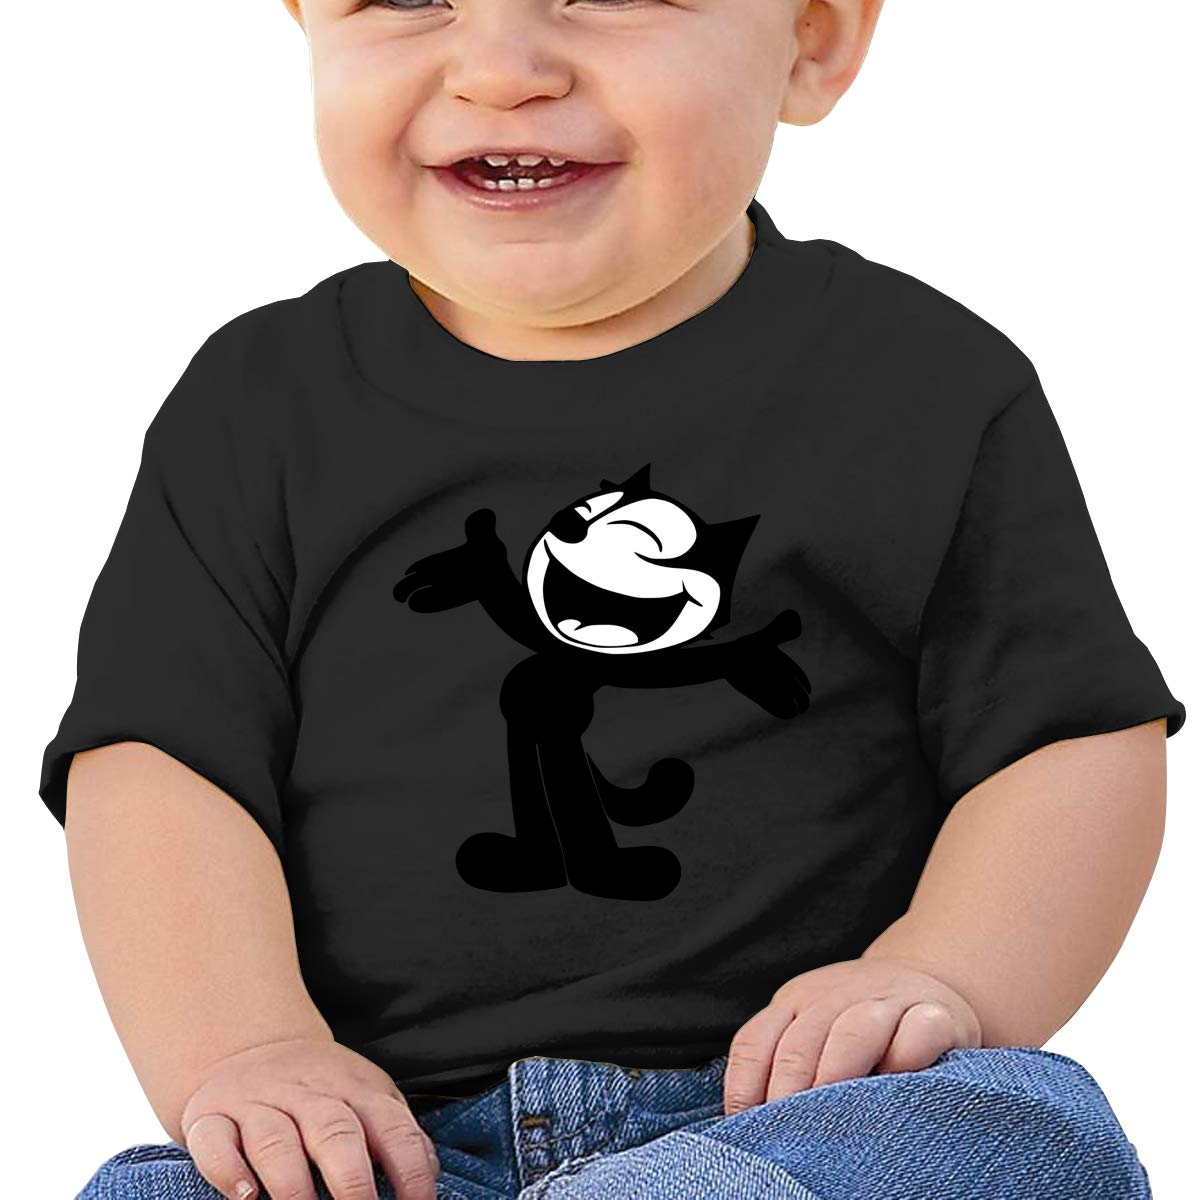 Boys Girls Shirts Smart Felix The Pussy Cat Baby Tees Black Tank Top for Kids